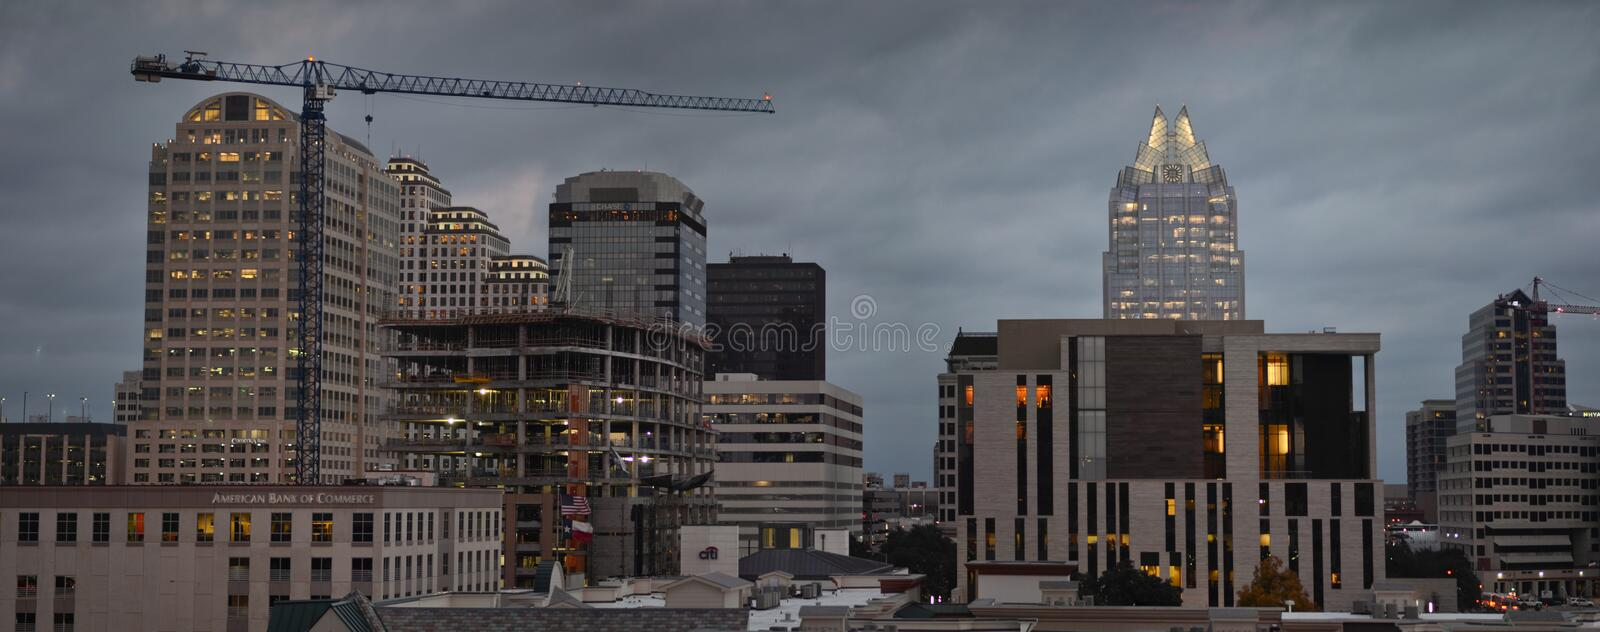 Austin by cloudy night royalty free stock photo